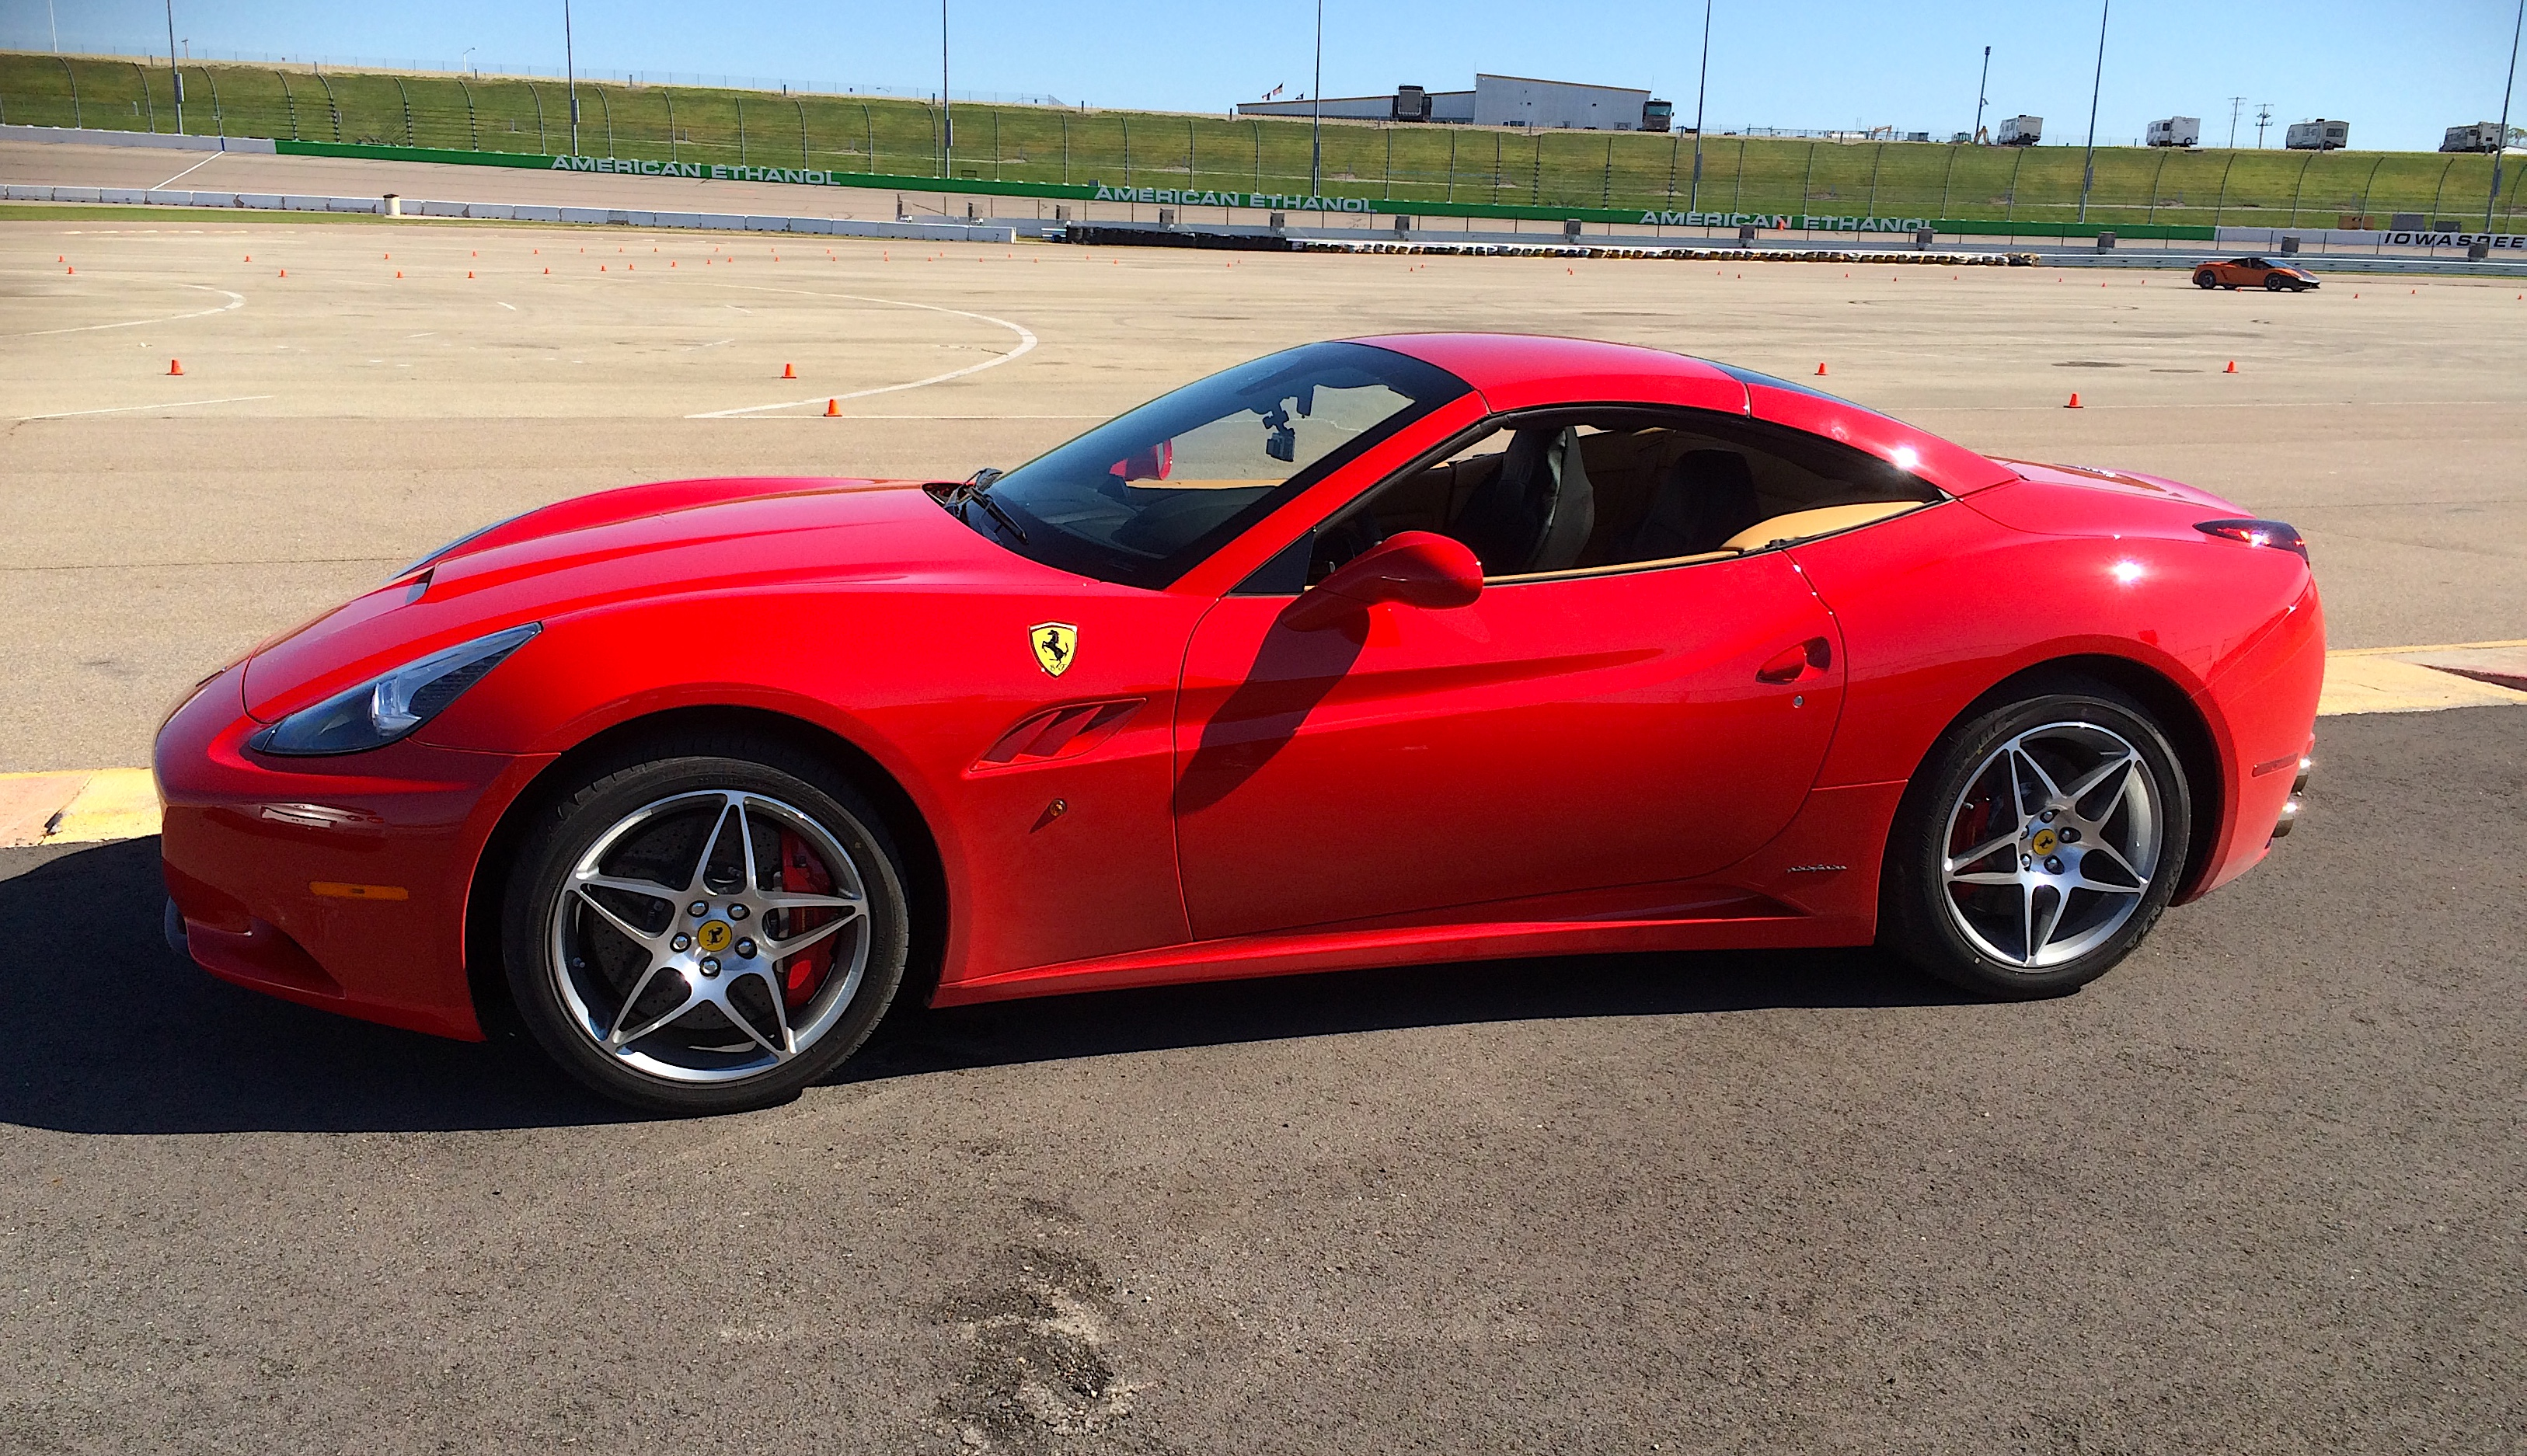 Driving My First Ferrari!